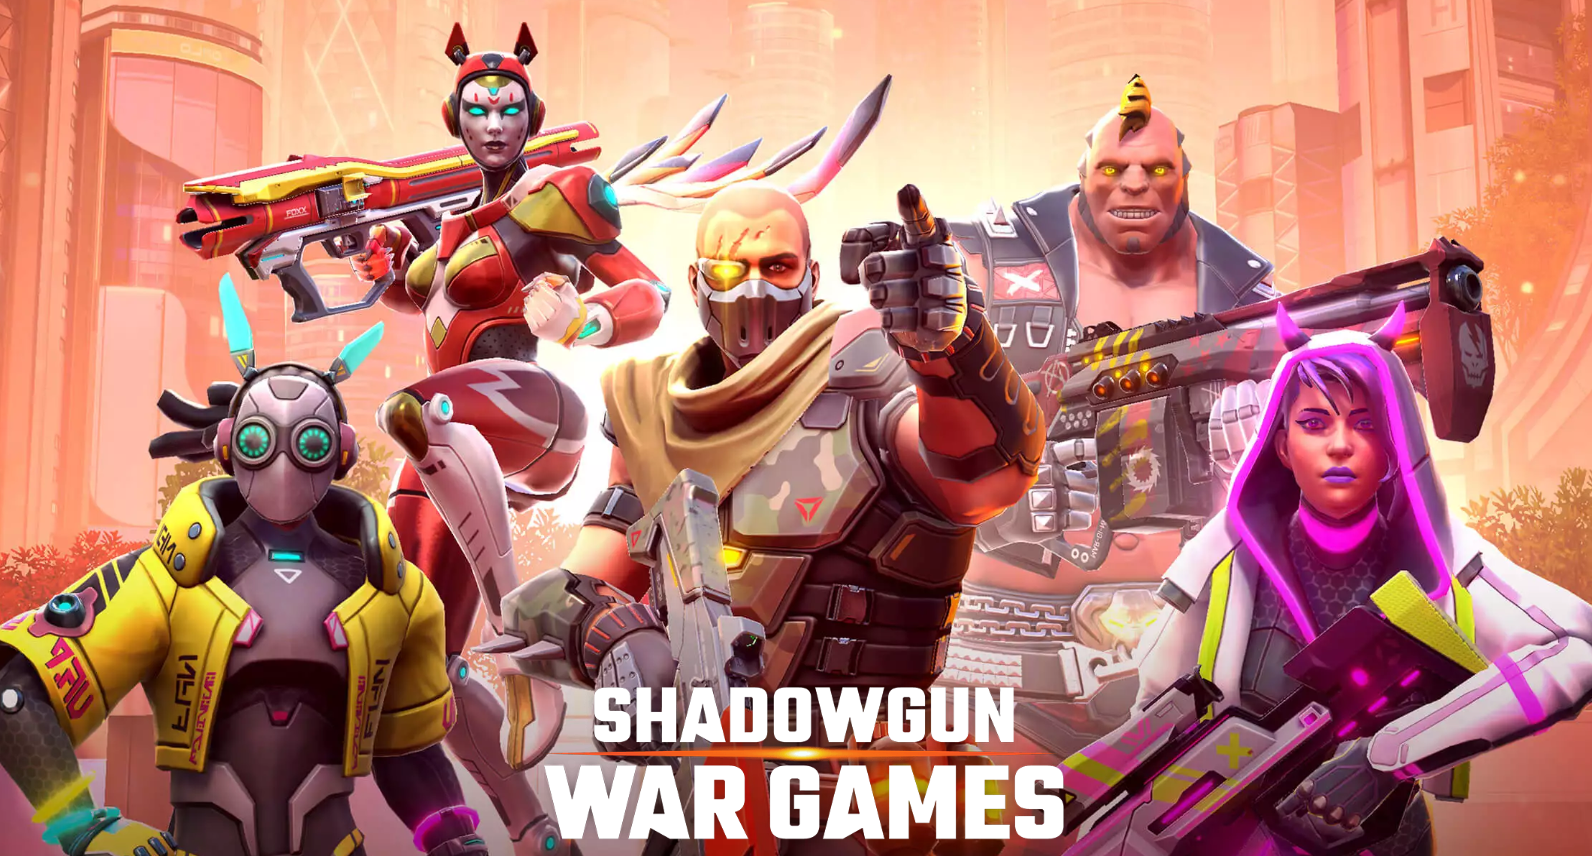 Shadowgun War Games: First Impressions - The Mobile Overwatch? 62